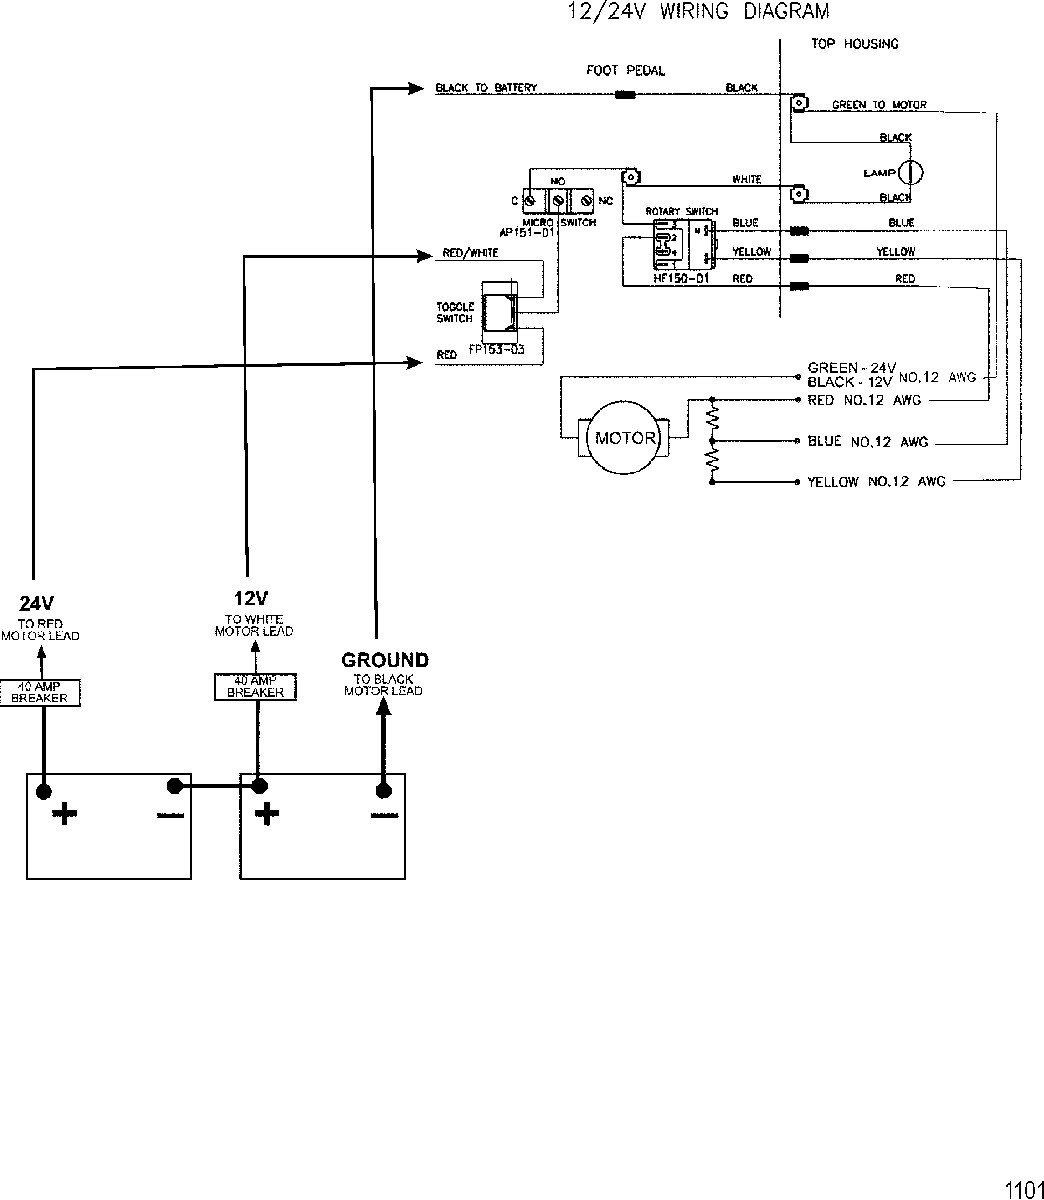 Johnson Trolling Motor Wiring Diagram Guide And Troubleshooting Of Omc Schematic Diagrams Rh 19 Ecker Leasing De 36 Volt Battery